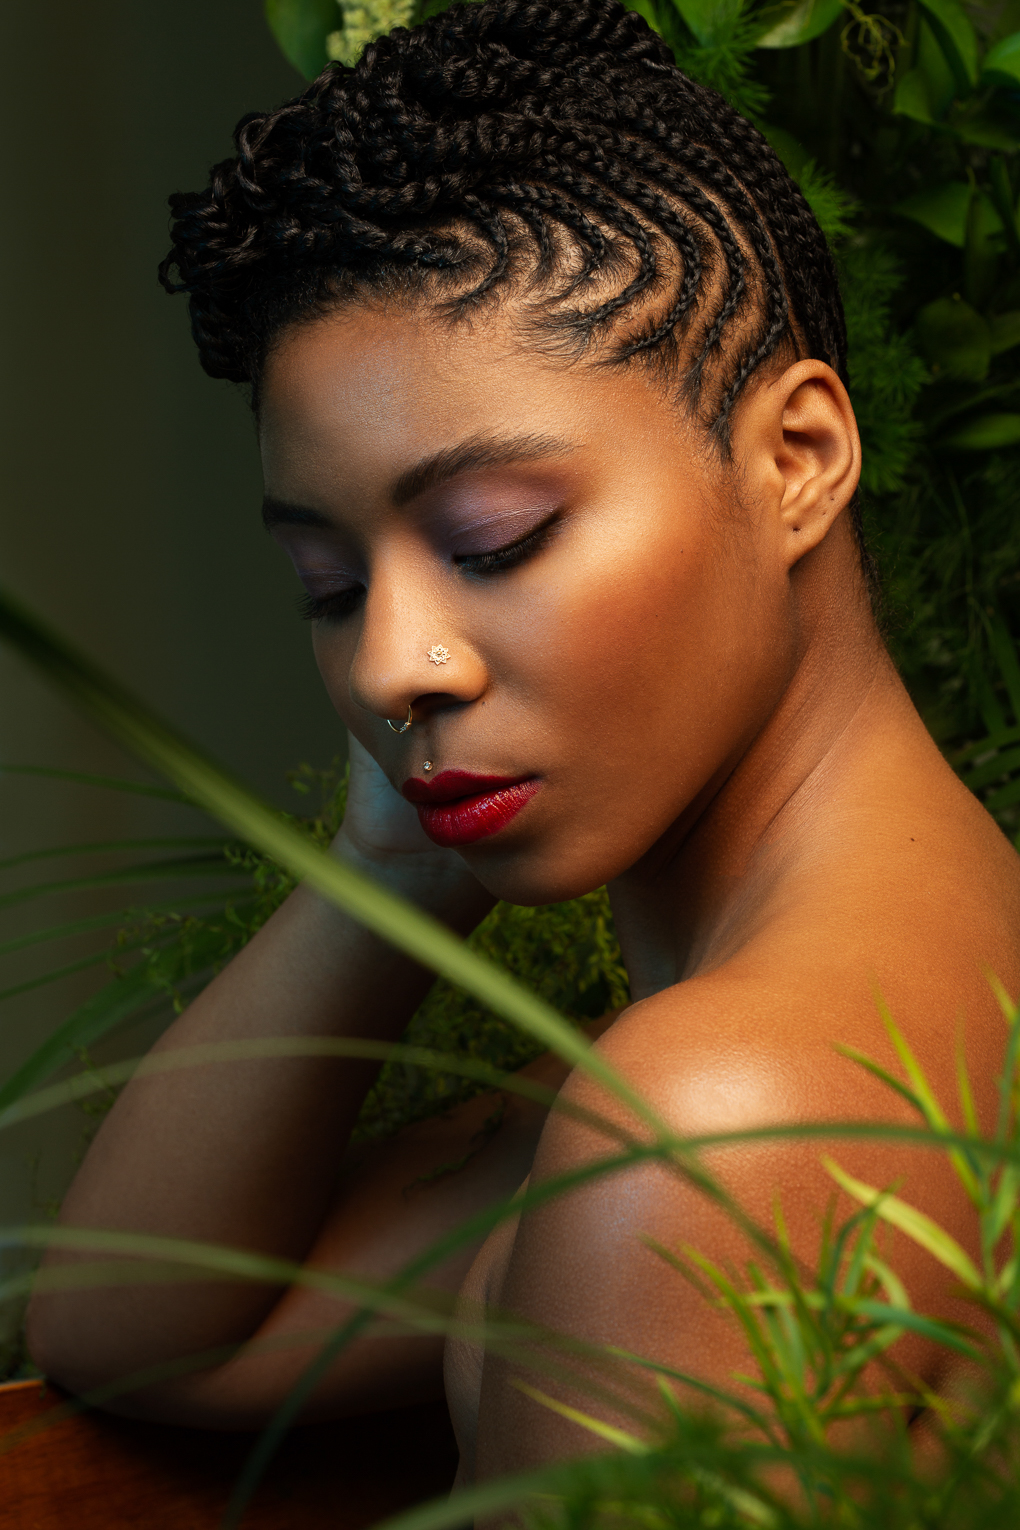 Moody beauty portrait of black woman with red lips by Ella Sophie, commercial photographer for women